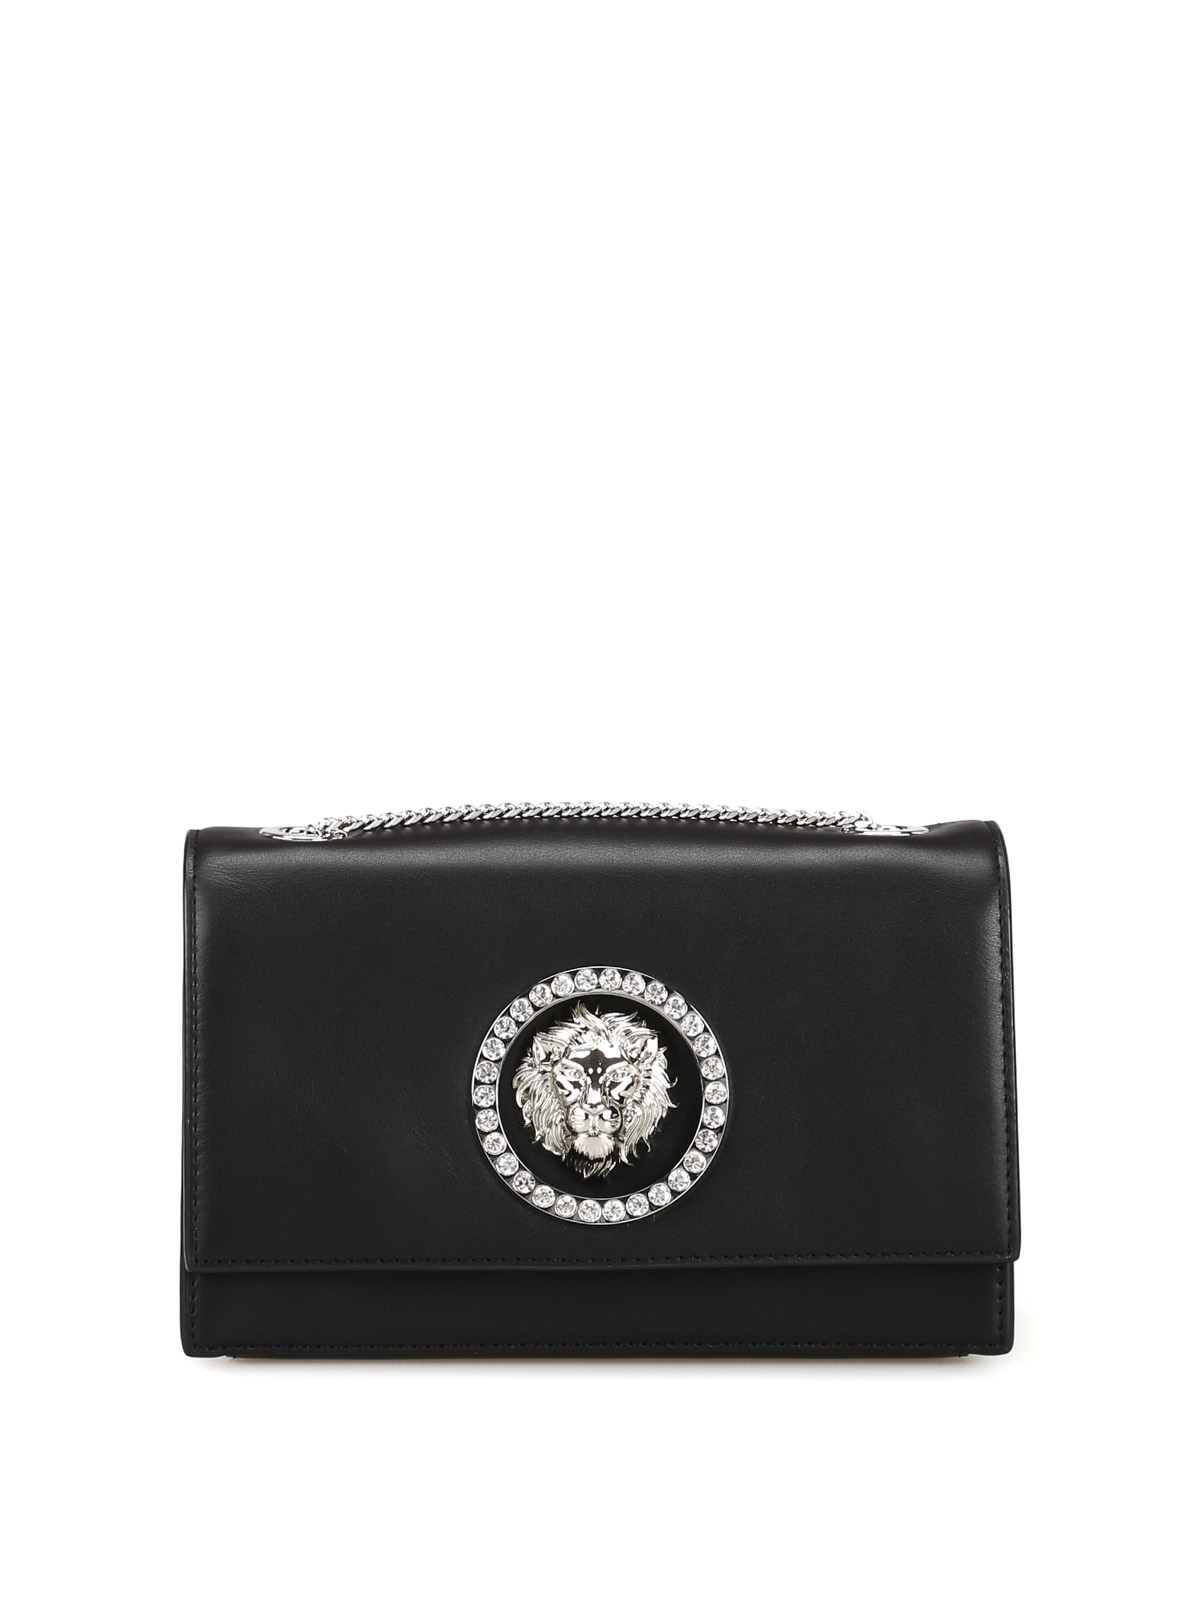 68b82d5bfda Versus Versace - Crystal eyelet Lion Head black clutch - clutches ...